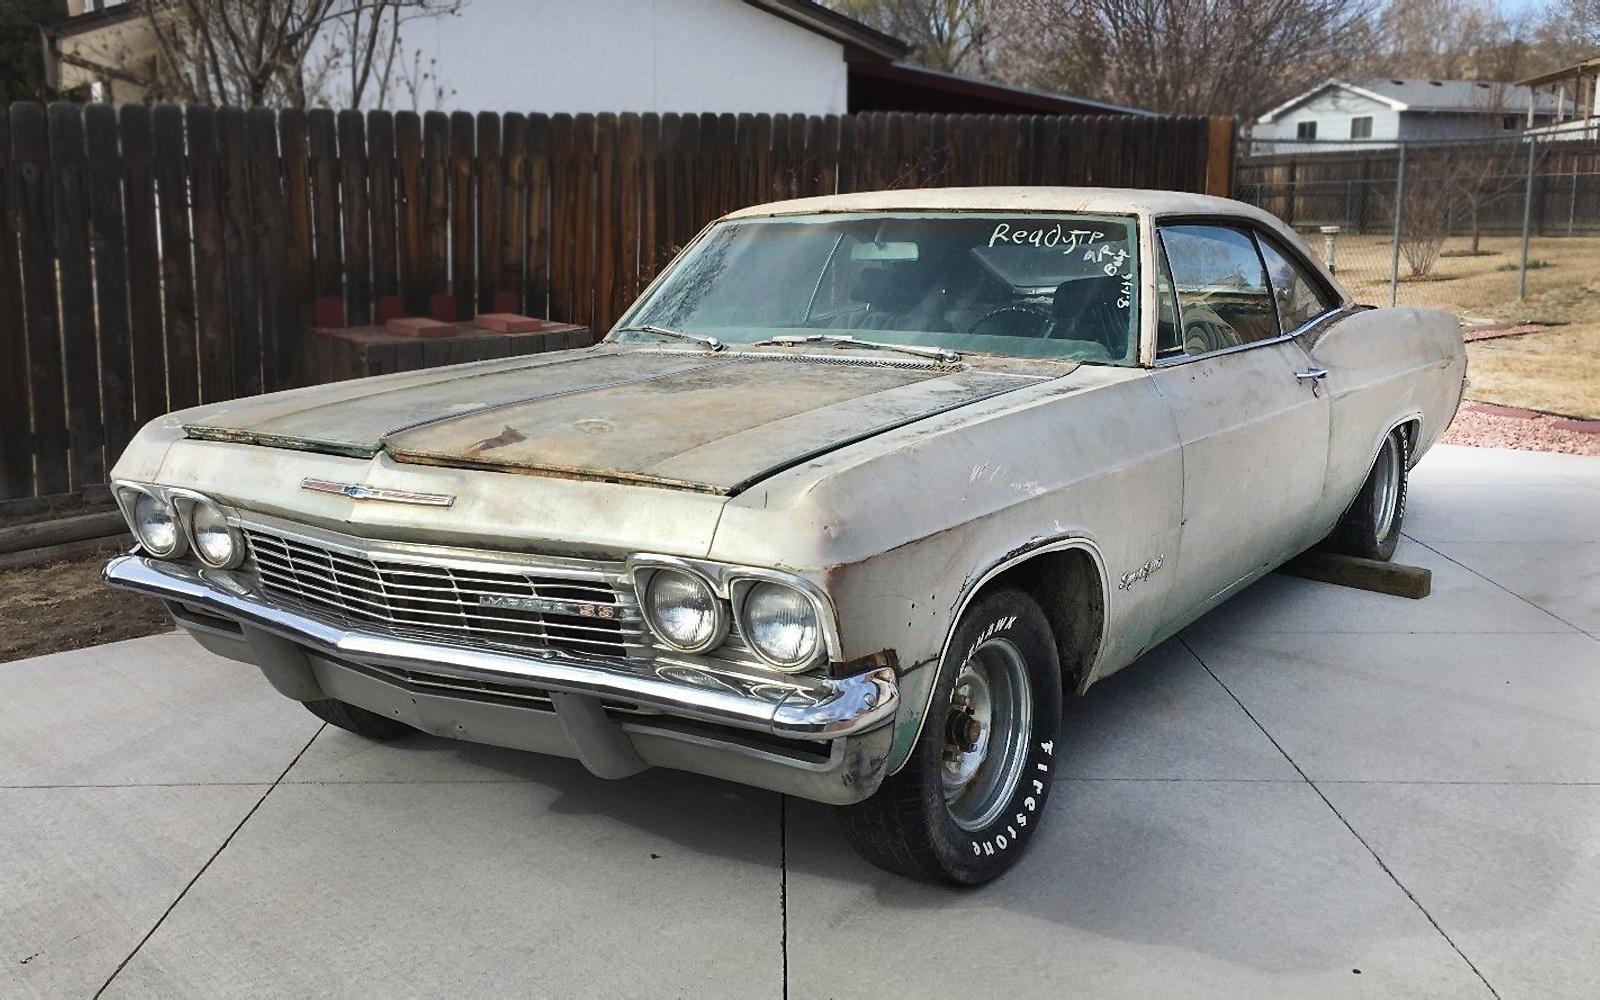 1965 chevrolet impala ss 396 also 1965 impala ss 396 425 hp for sale - 1965 Chevrolet Impala Ss 396 Also 1965 Impala Ss 396 425 Hp For Sale 9